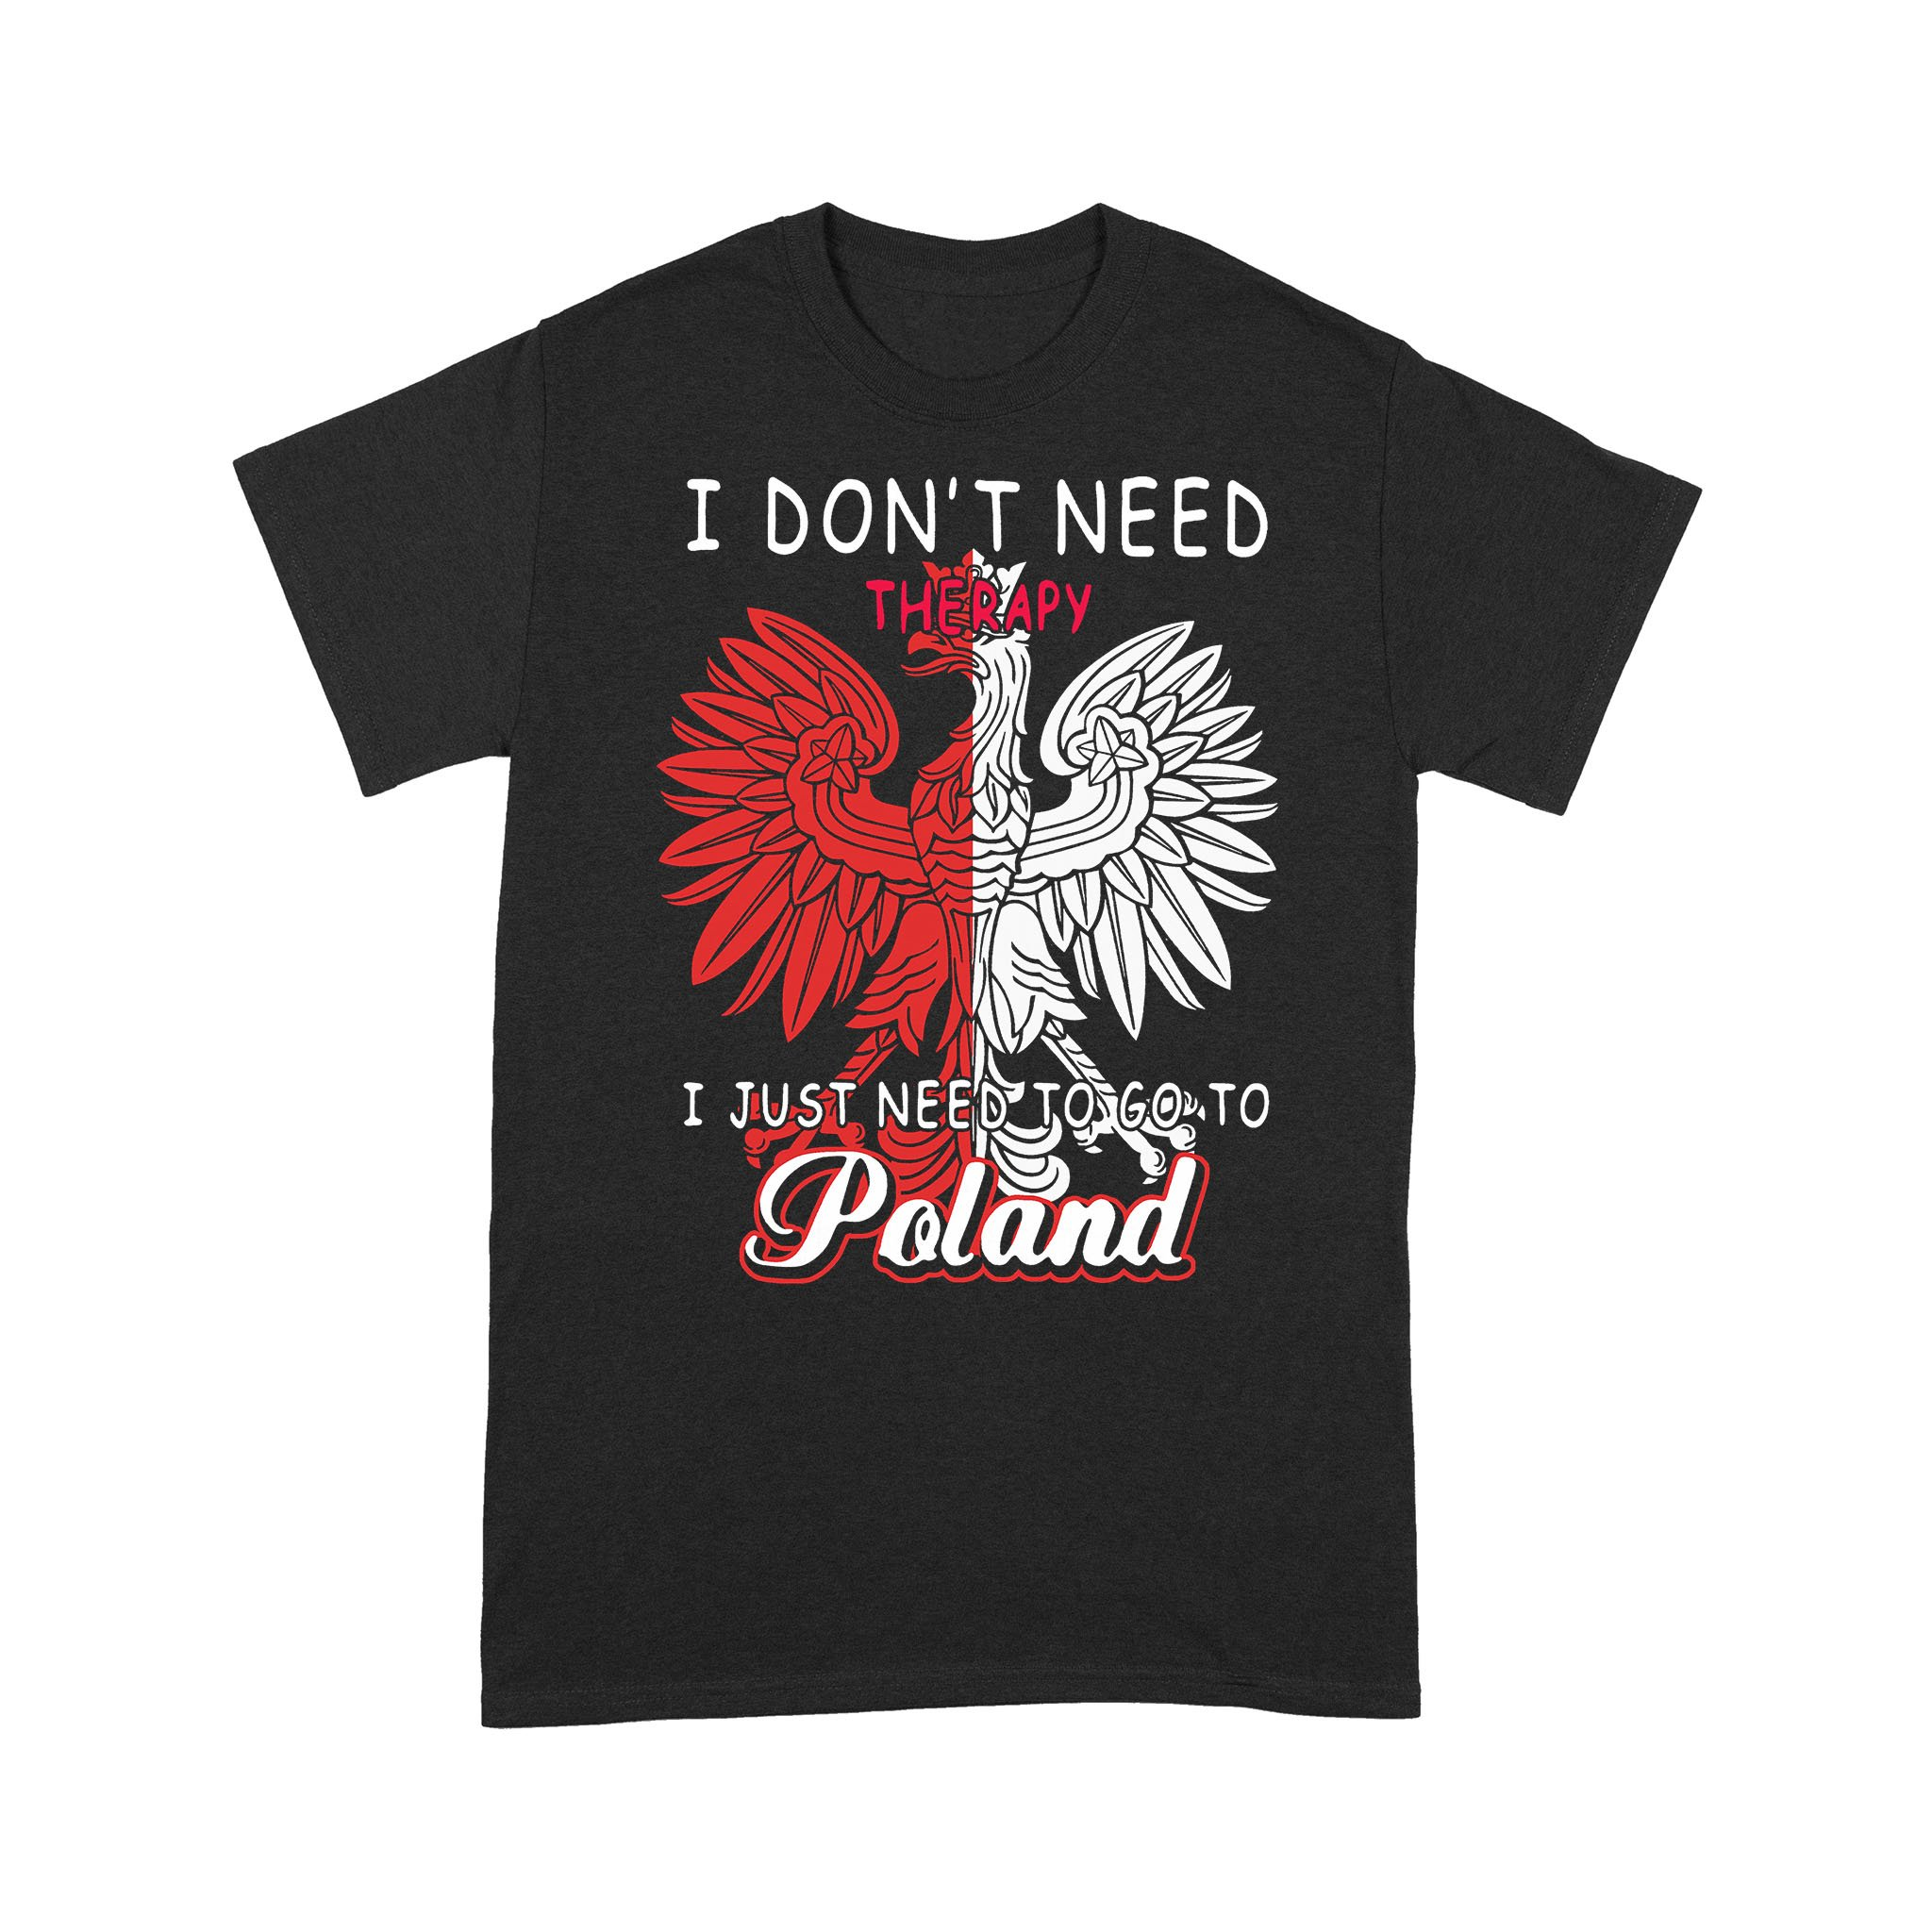 I Don't Need Therapy I Just Need To Go To Poland T-shirt